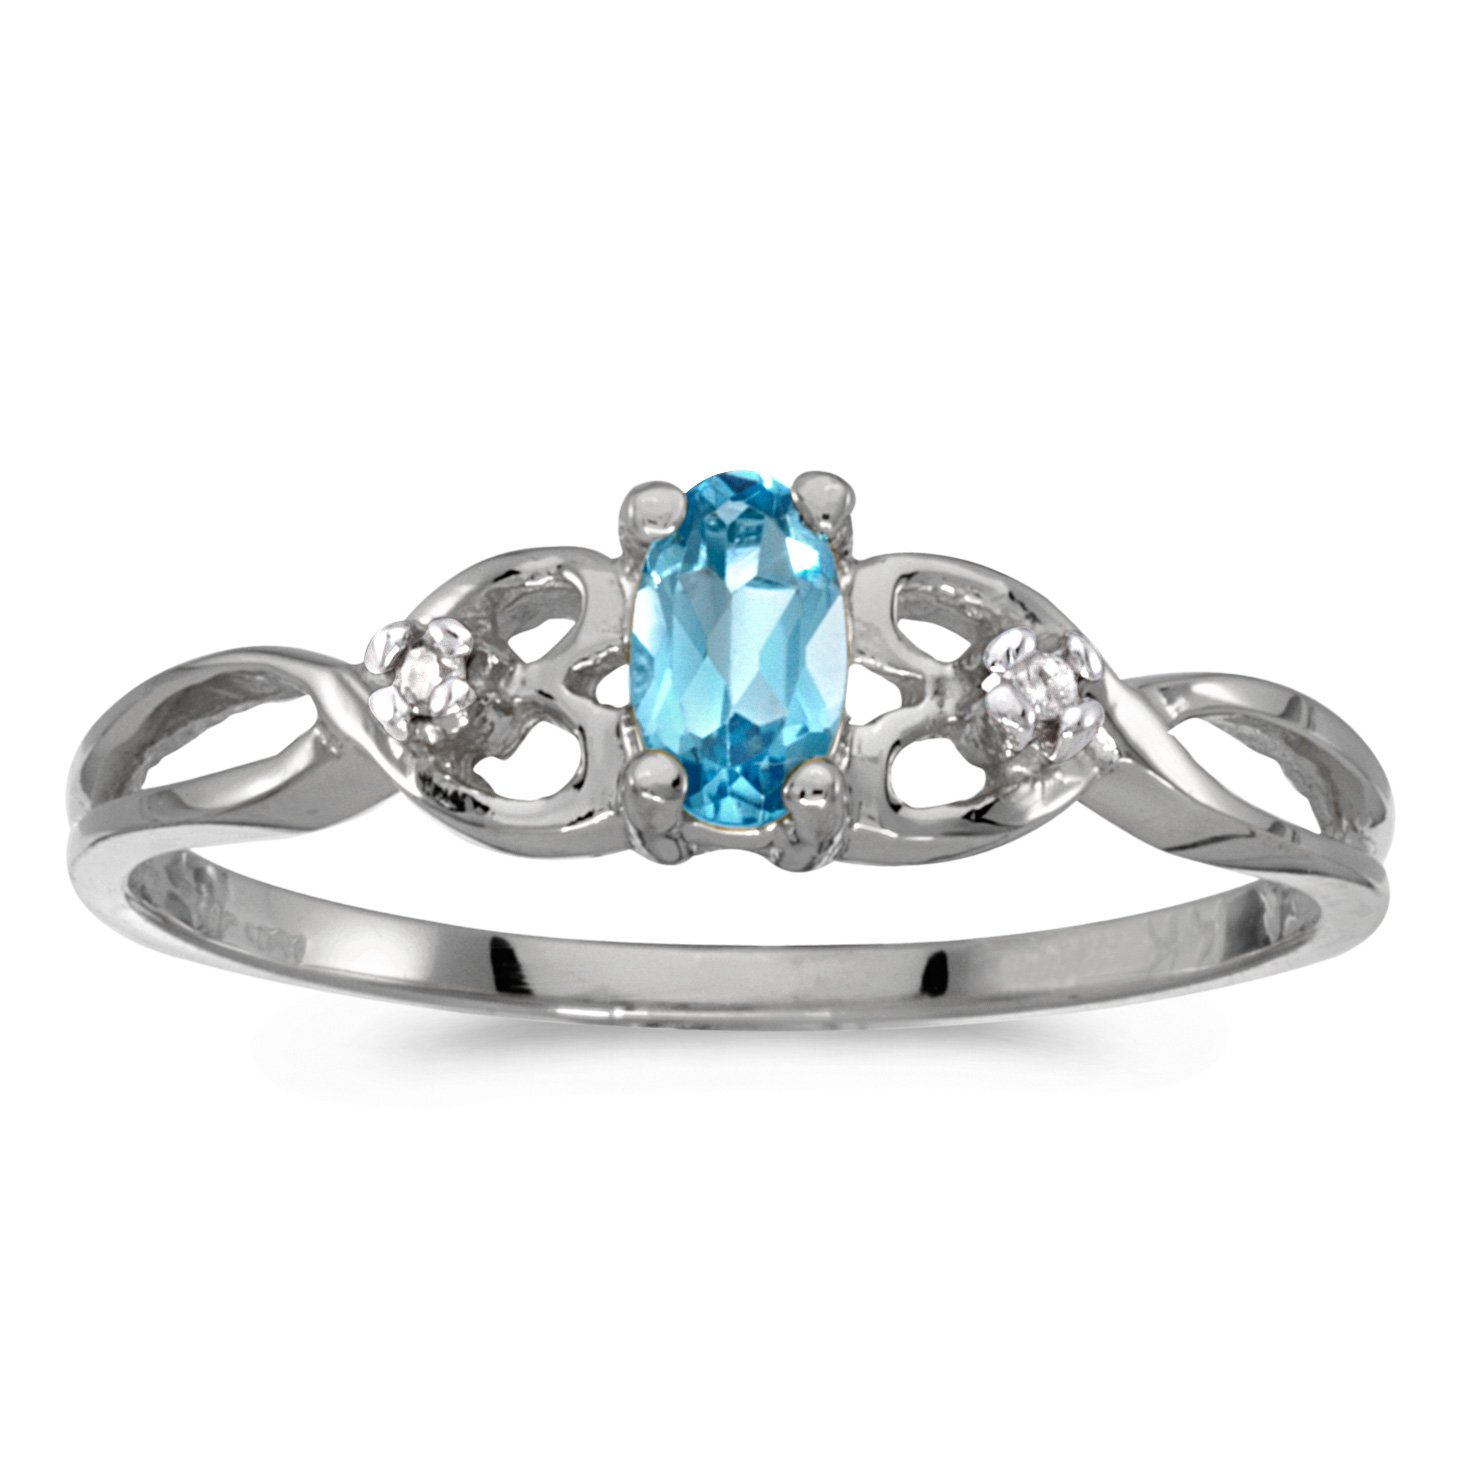 0.21 Carat ctw 14k Gold Oval Blue Topaz & Diamond Infinity Twisting Heart Shaped Promise Fashion Ring - White-gold, Size 11